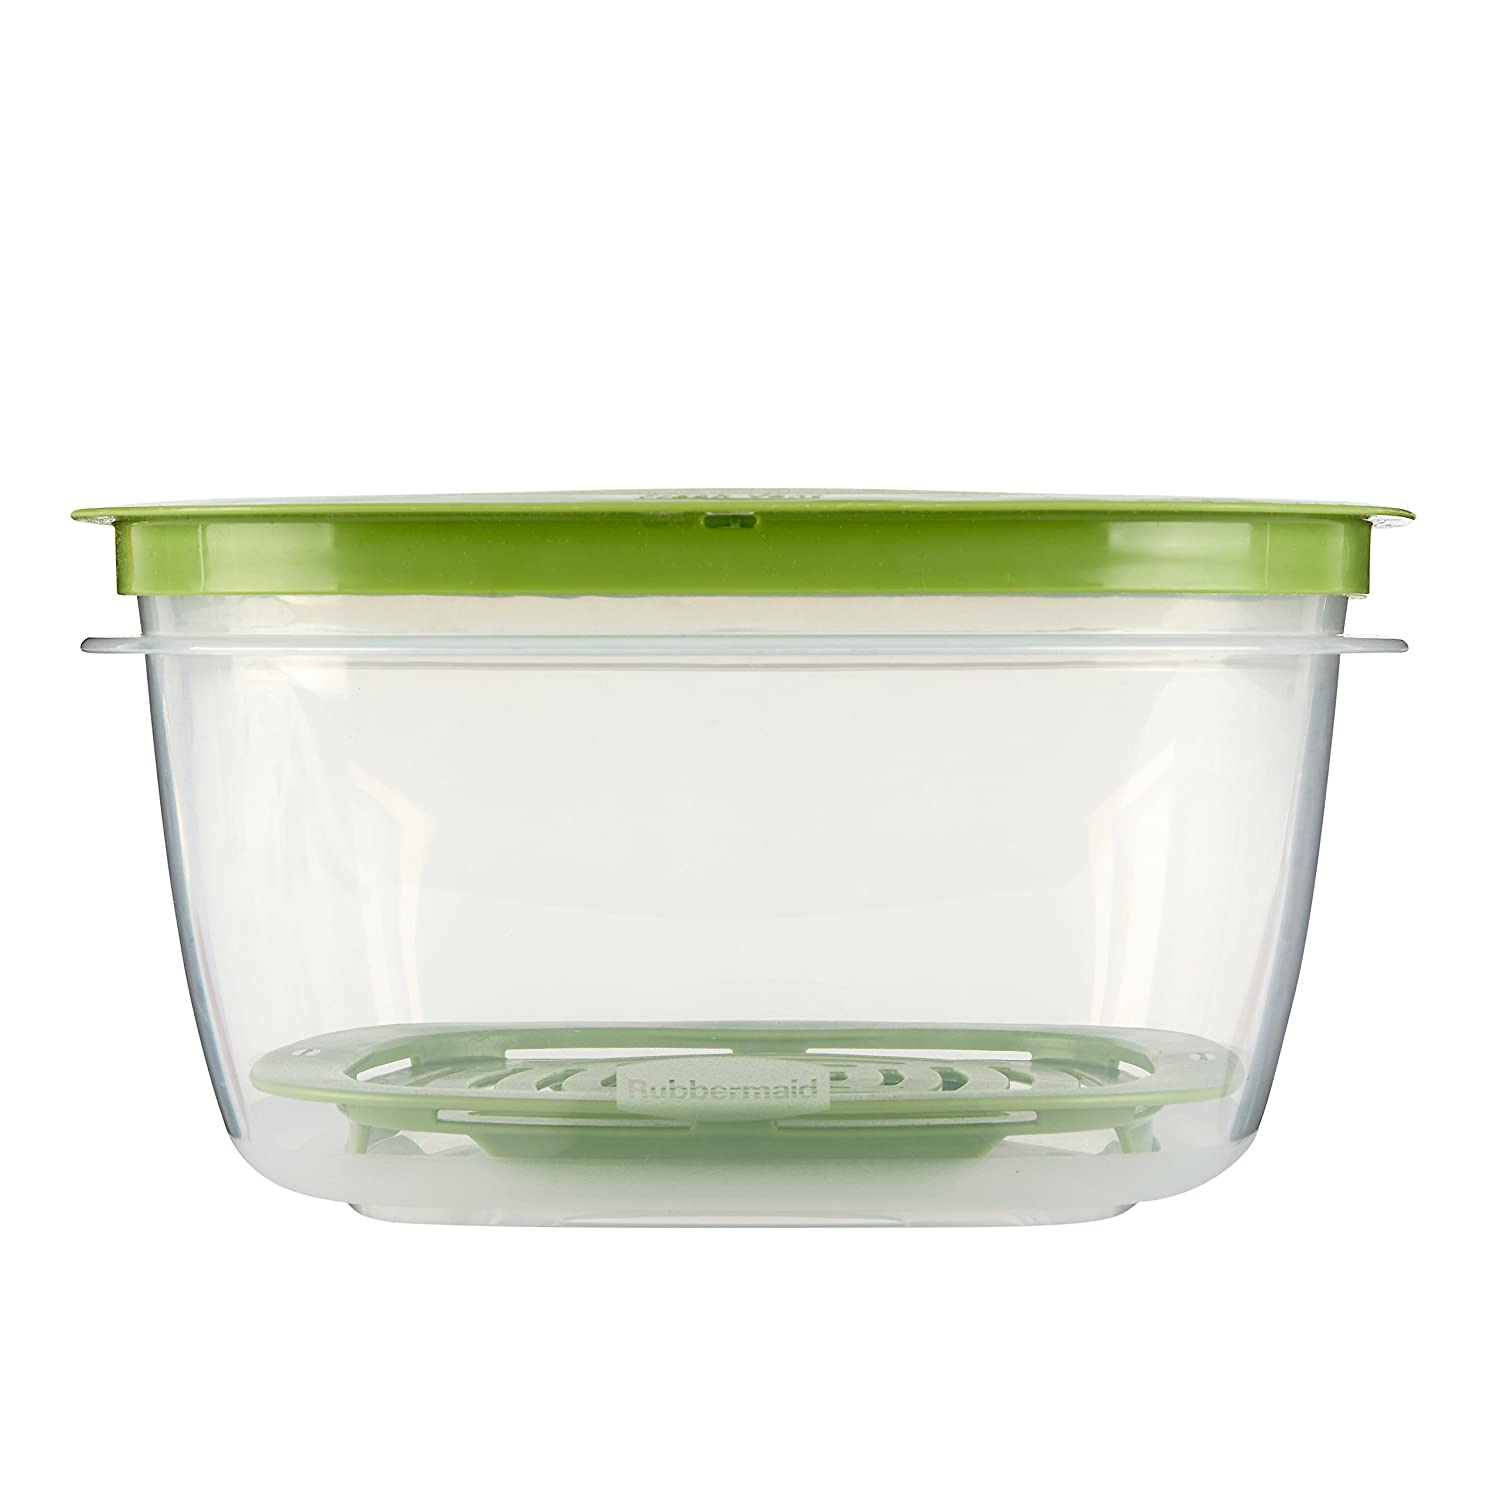 Rubbermaid Produce Saver Food Storage Container, 14 Cup 1776416